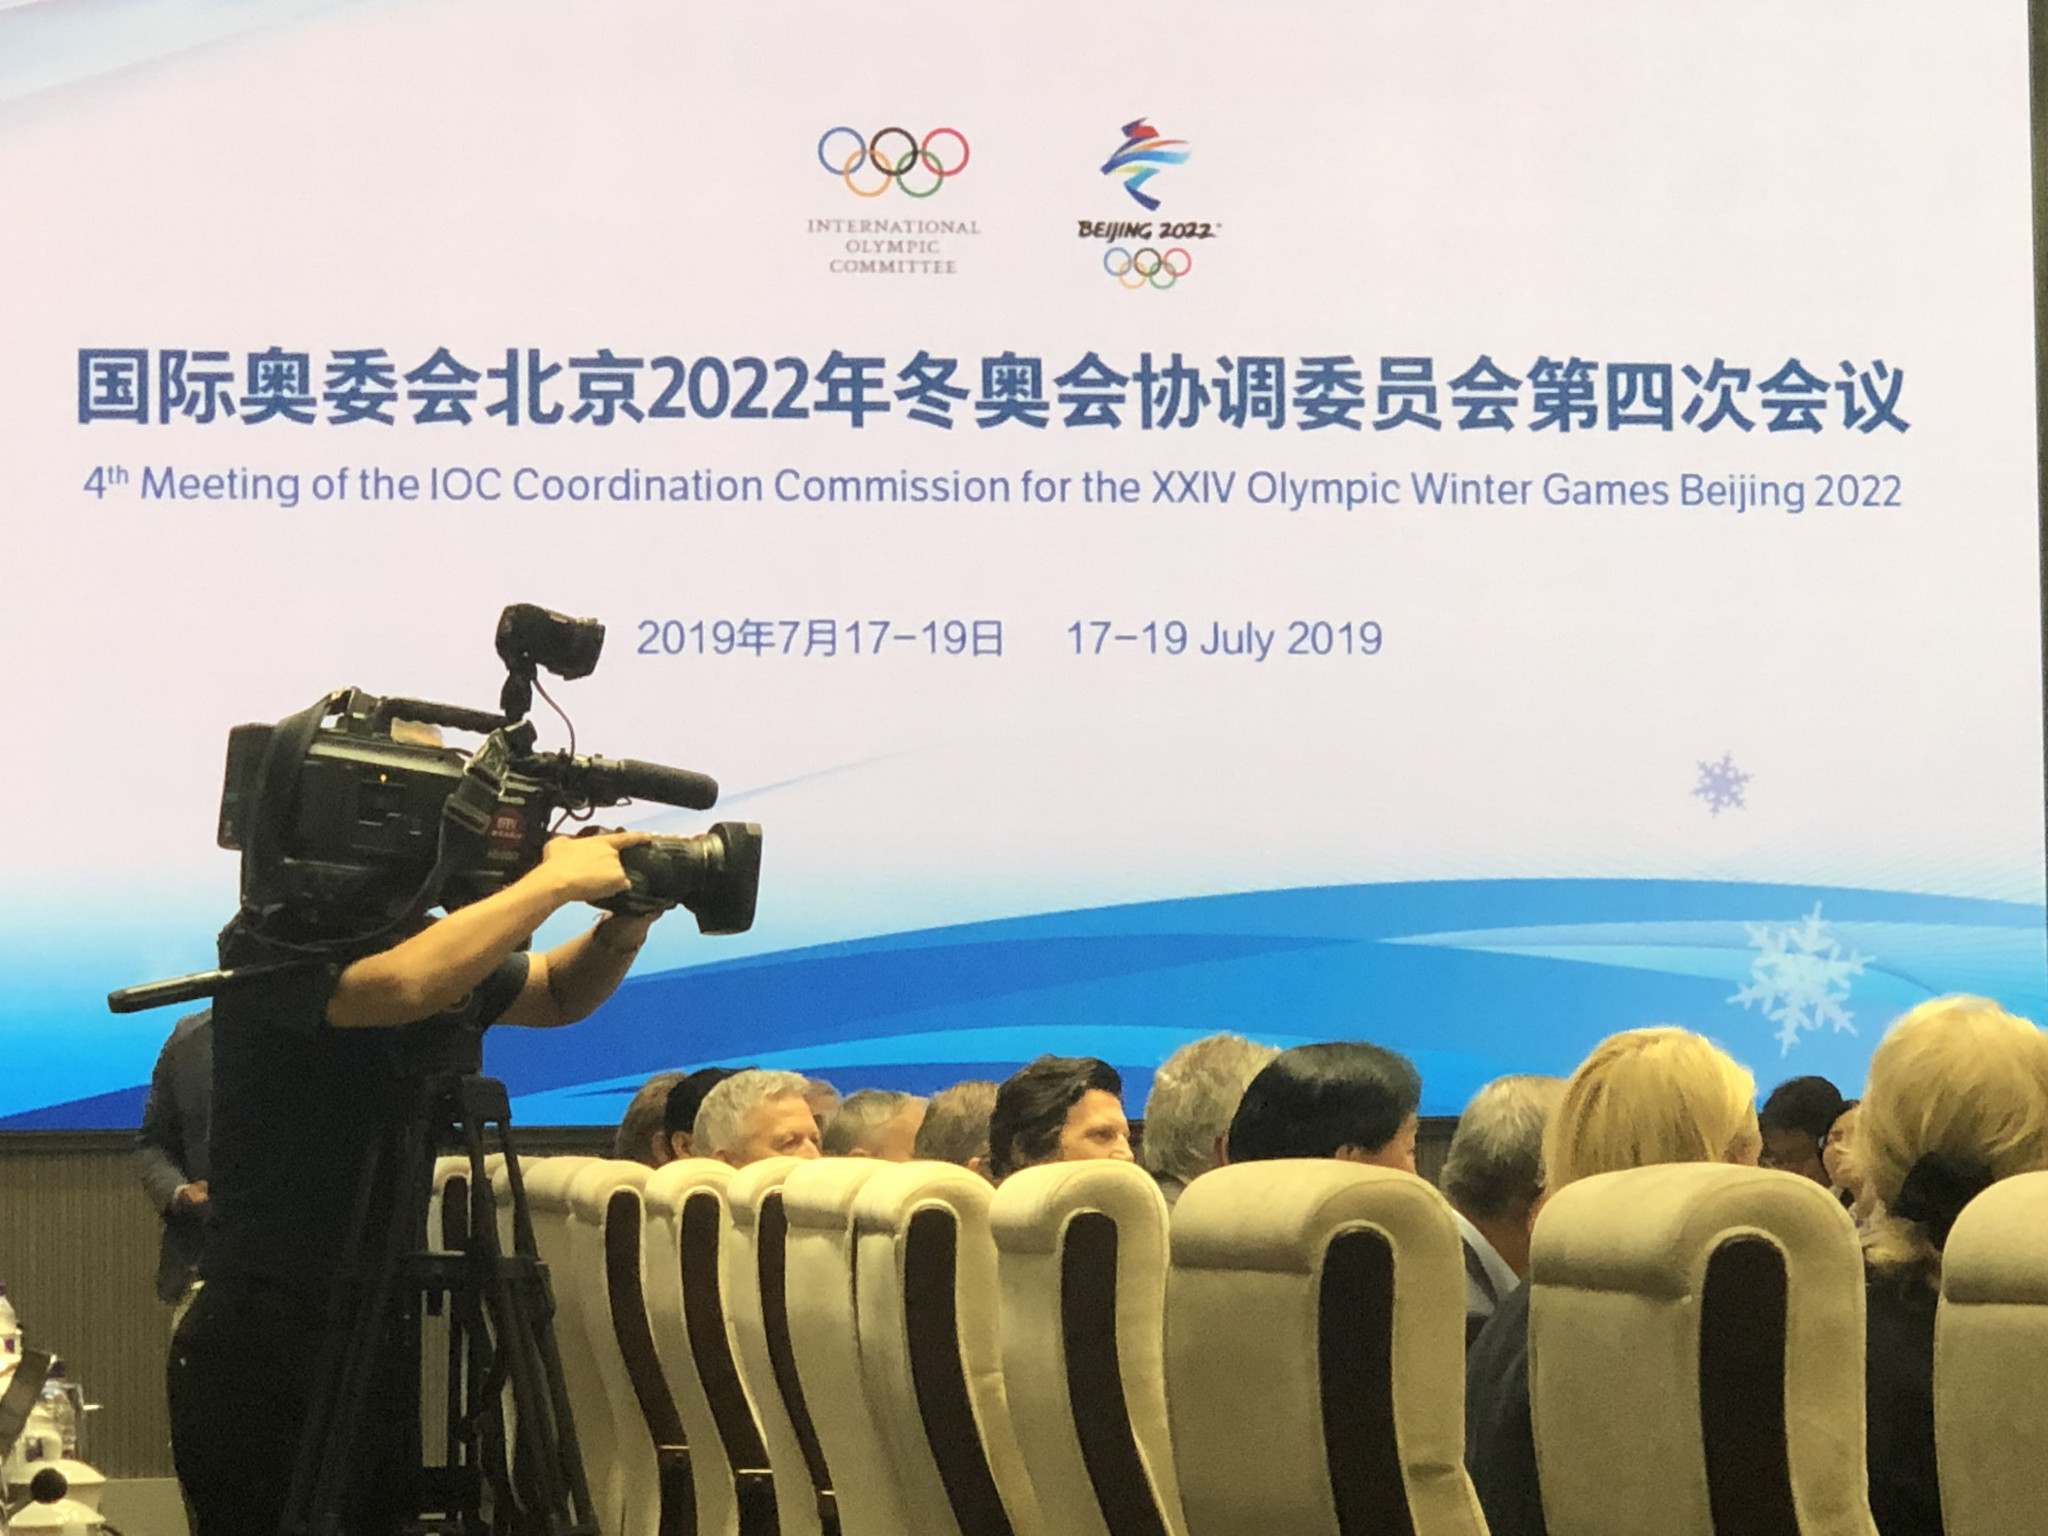 Representatives from Beijing 2022, the Chinese and Beijing Governments and the International Federations are all taking part in the fourth IOC Coordination Commission visit to the Chinese capital ©ITG